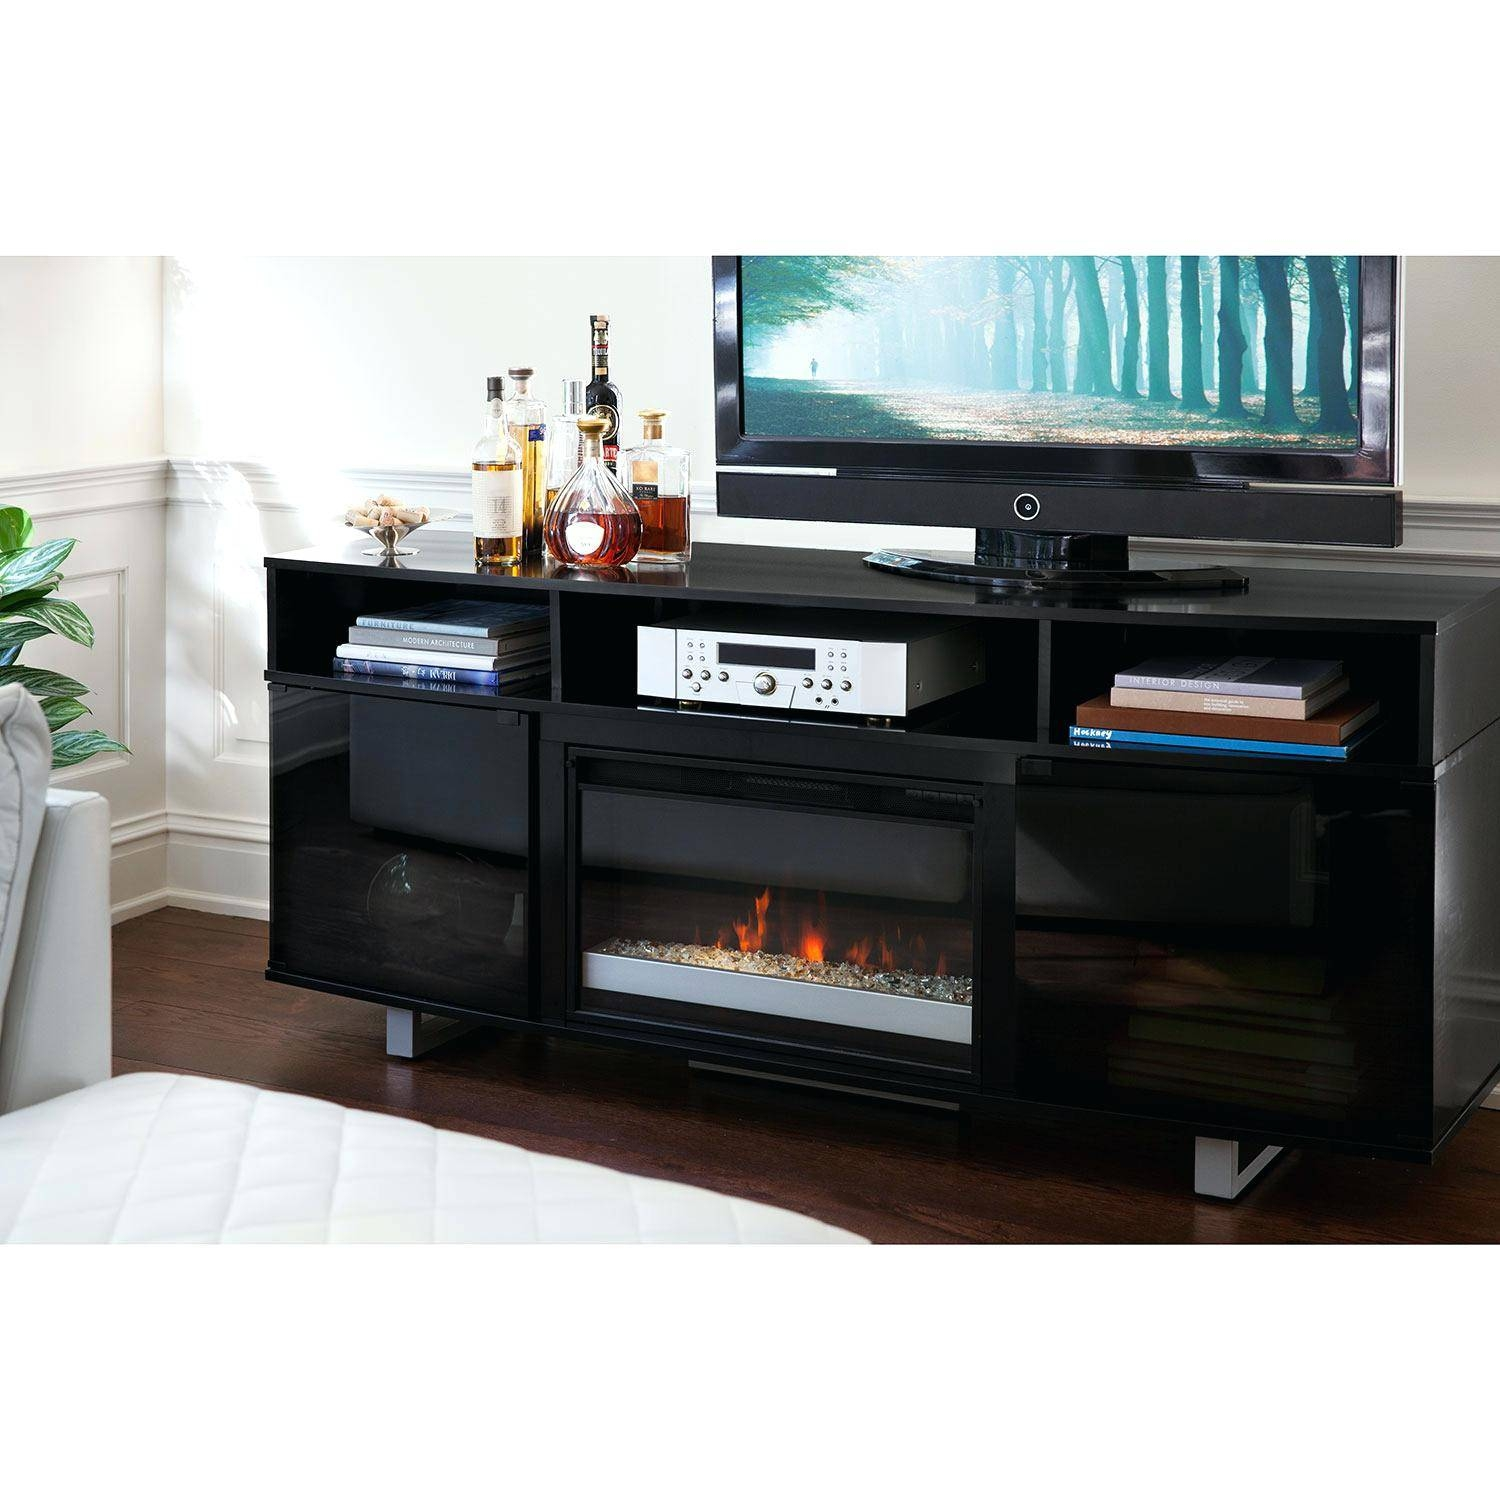 Tv Stand : Tv Stand Furniture Compact Jm Tv027 Modern Tv Stand In regarding Shiny Black Tv Stands (Image 14 of 15)